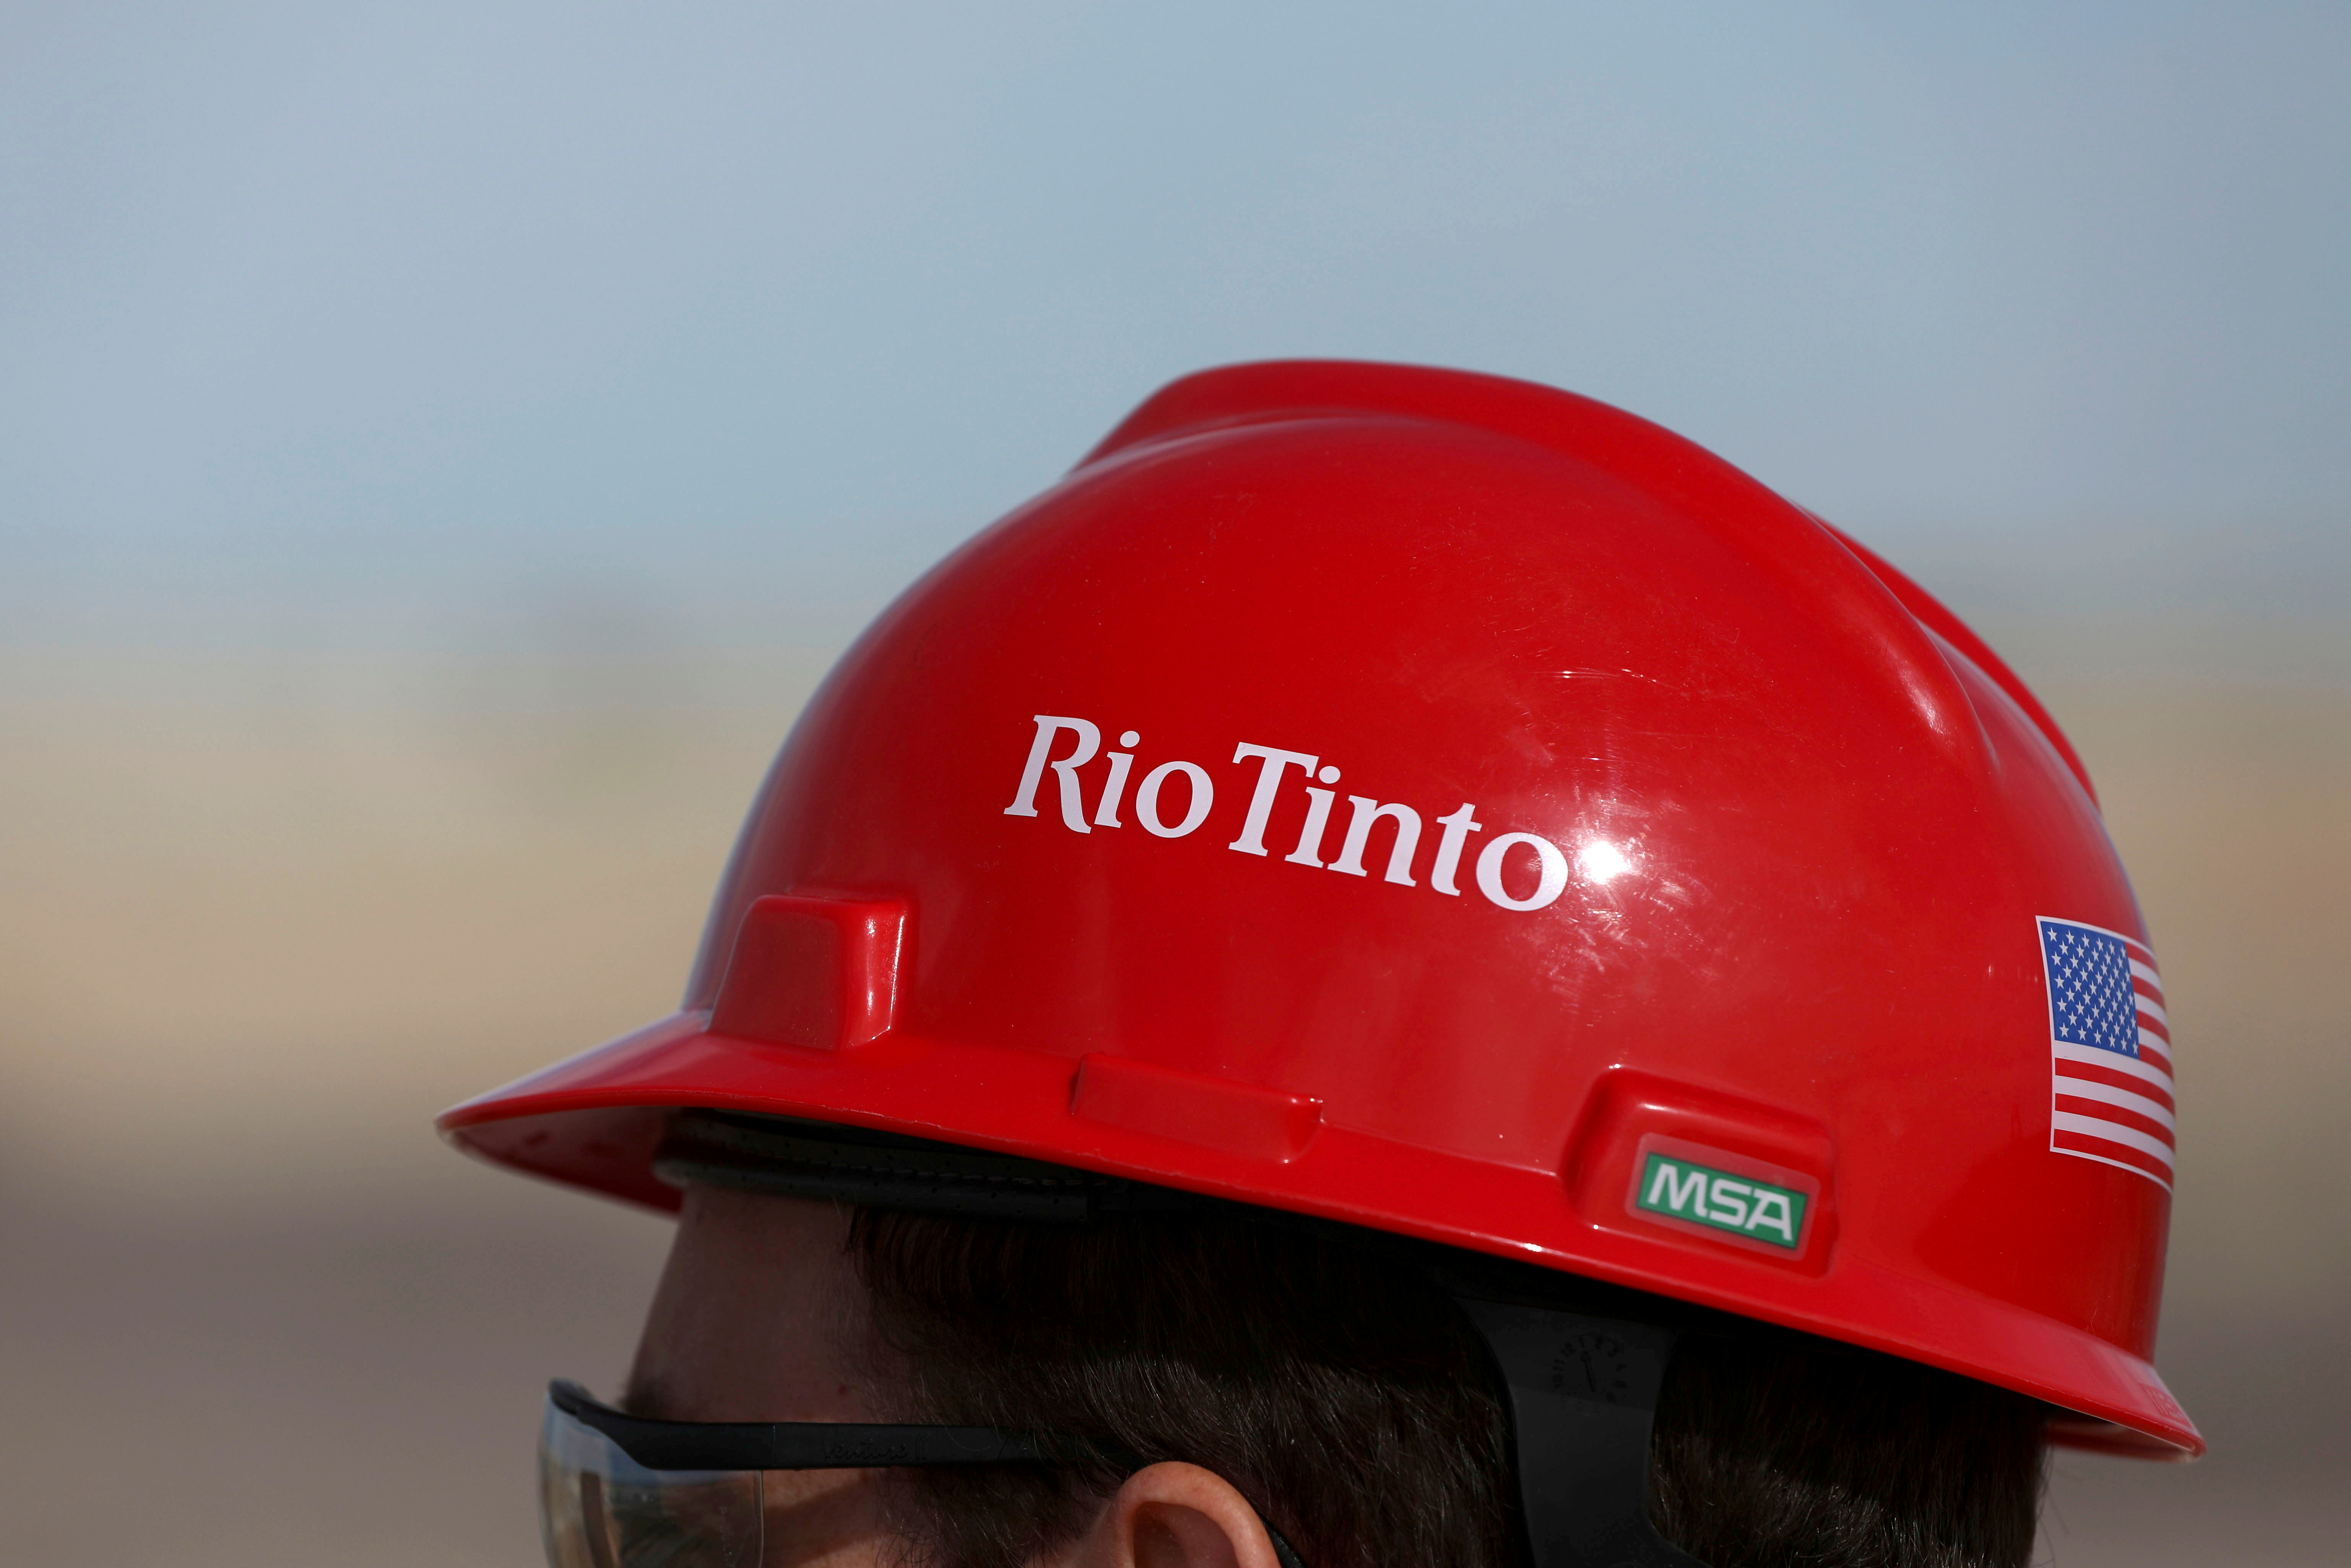 The Rio Tinto logo is displayed on a visitor's helmet at a borates mine in Boron, California, U.S., November 15, 2019. REUTERS/Patrick T. Fallon